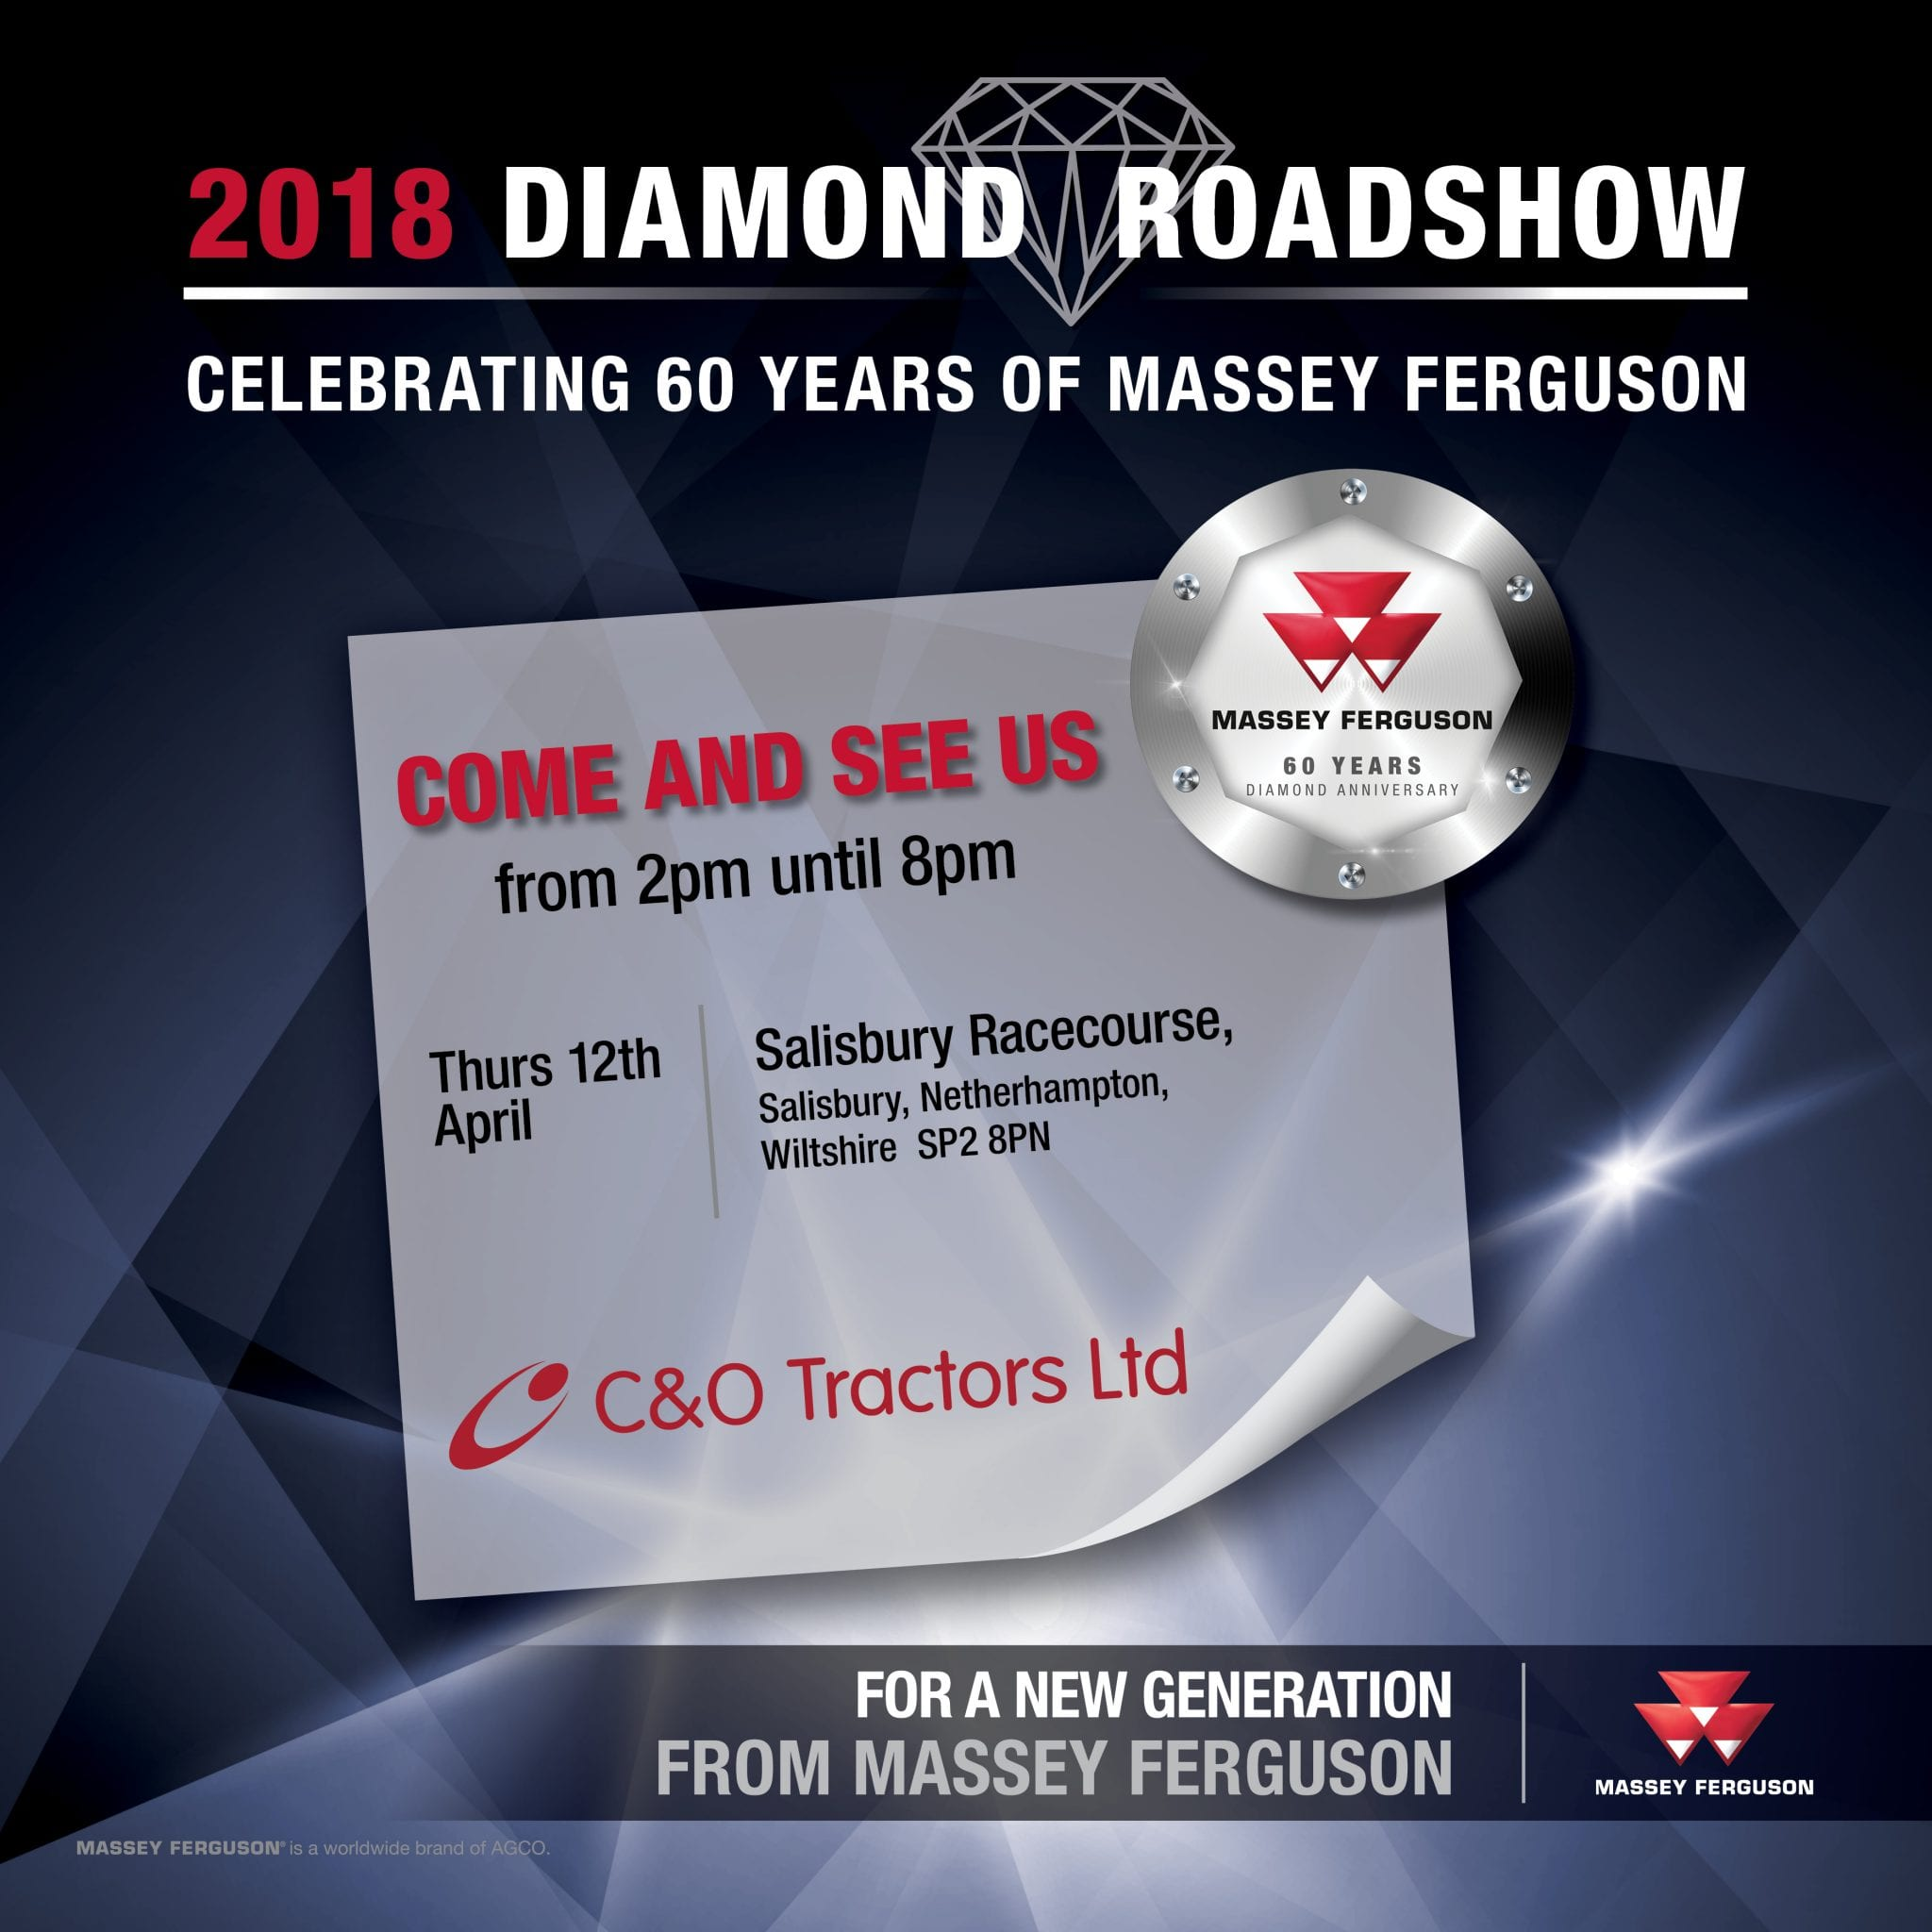 Massey Ferguson Diamond Roadshow